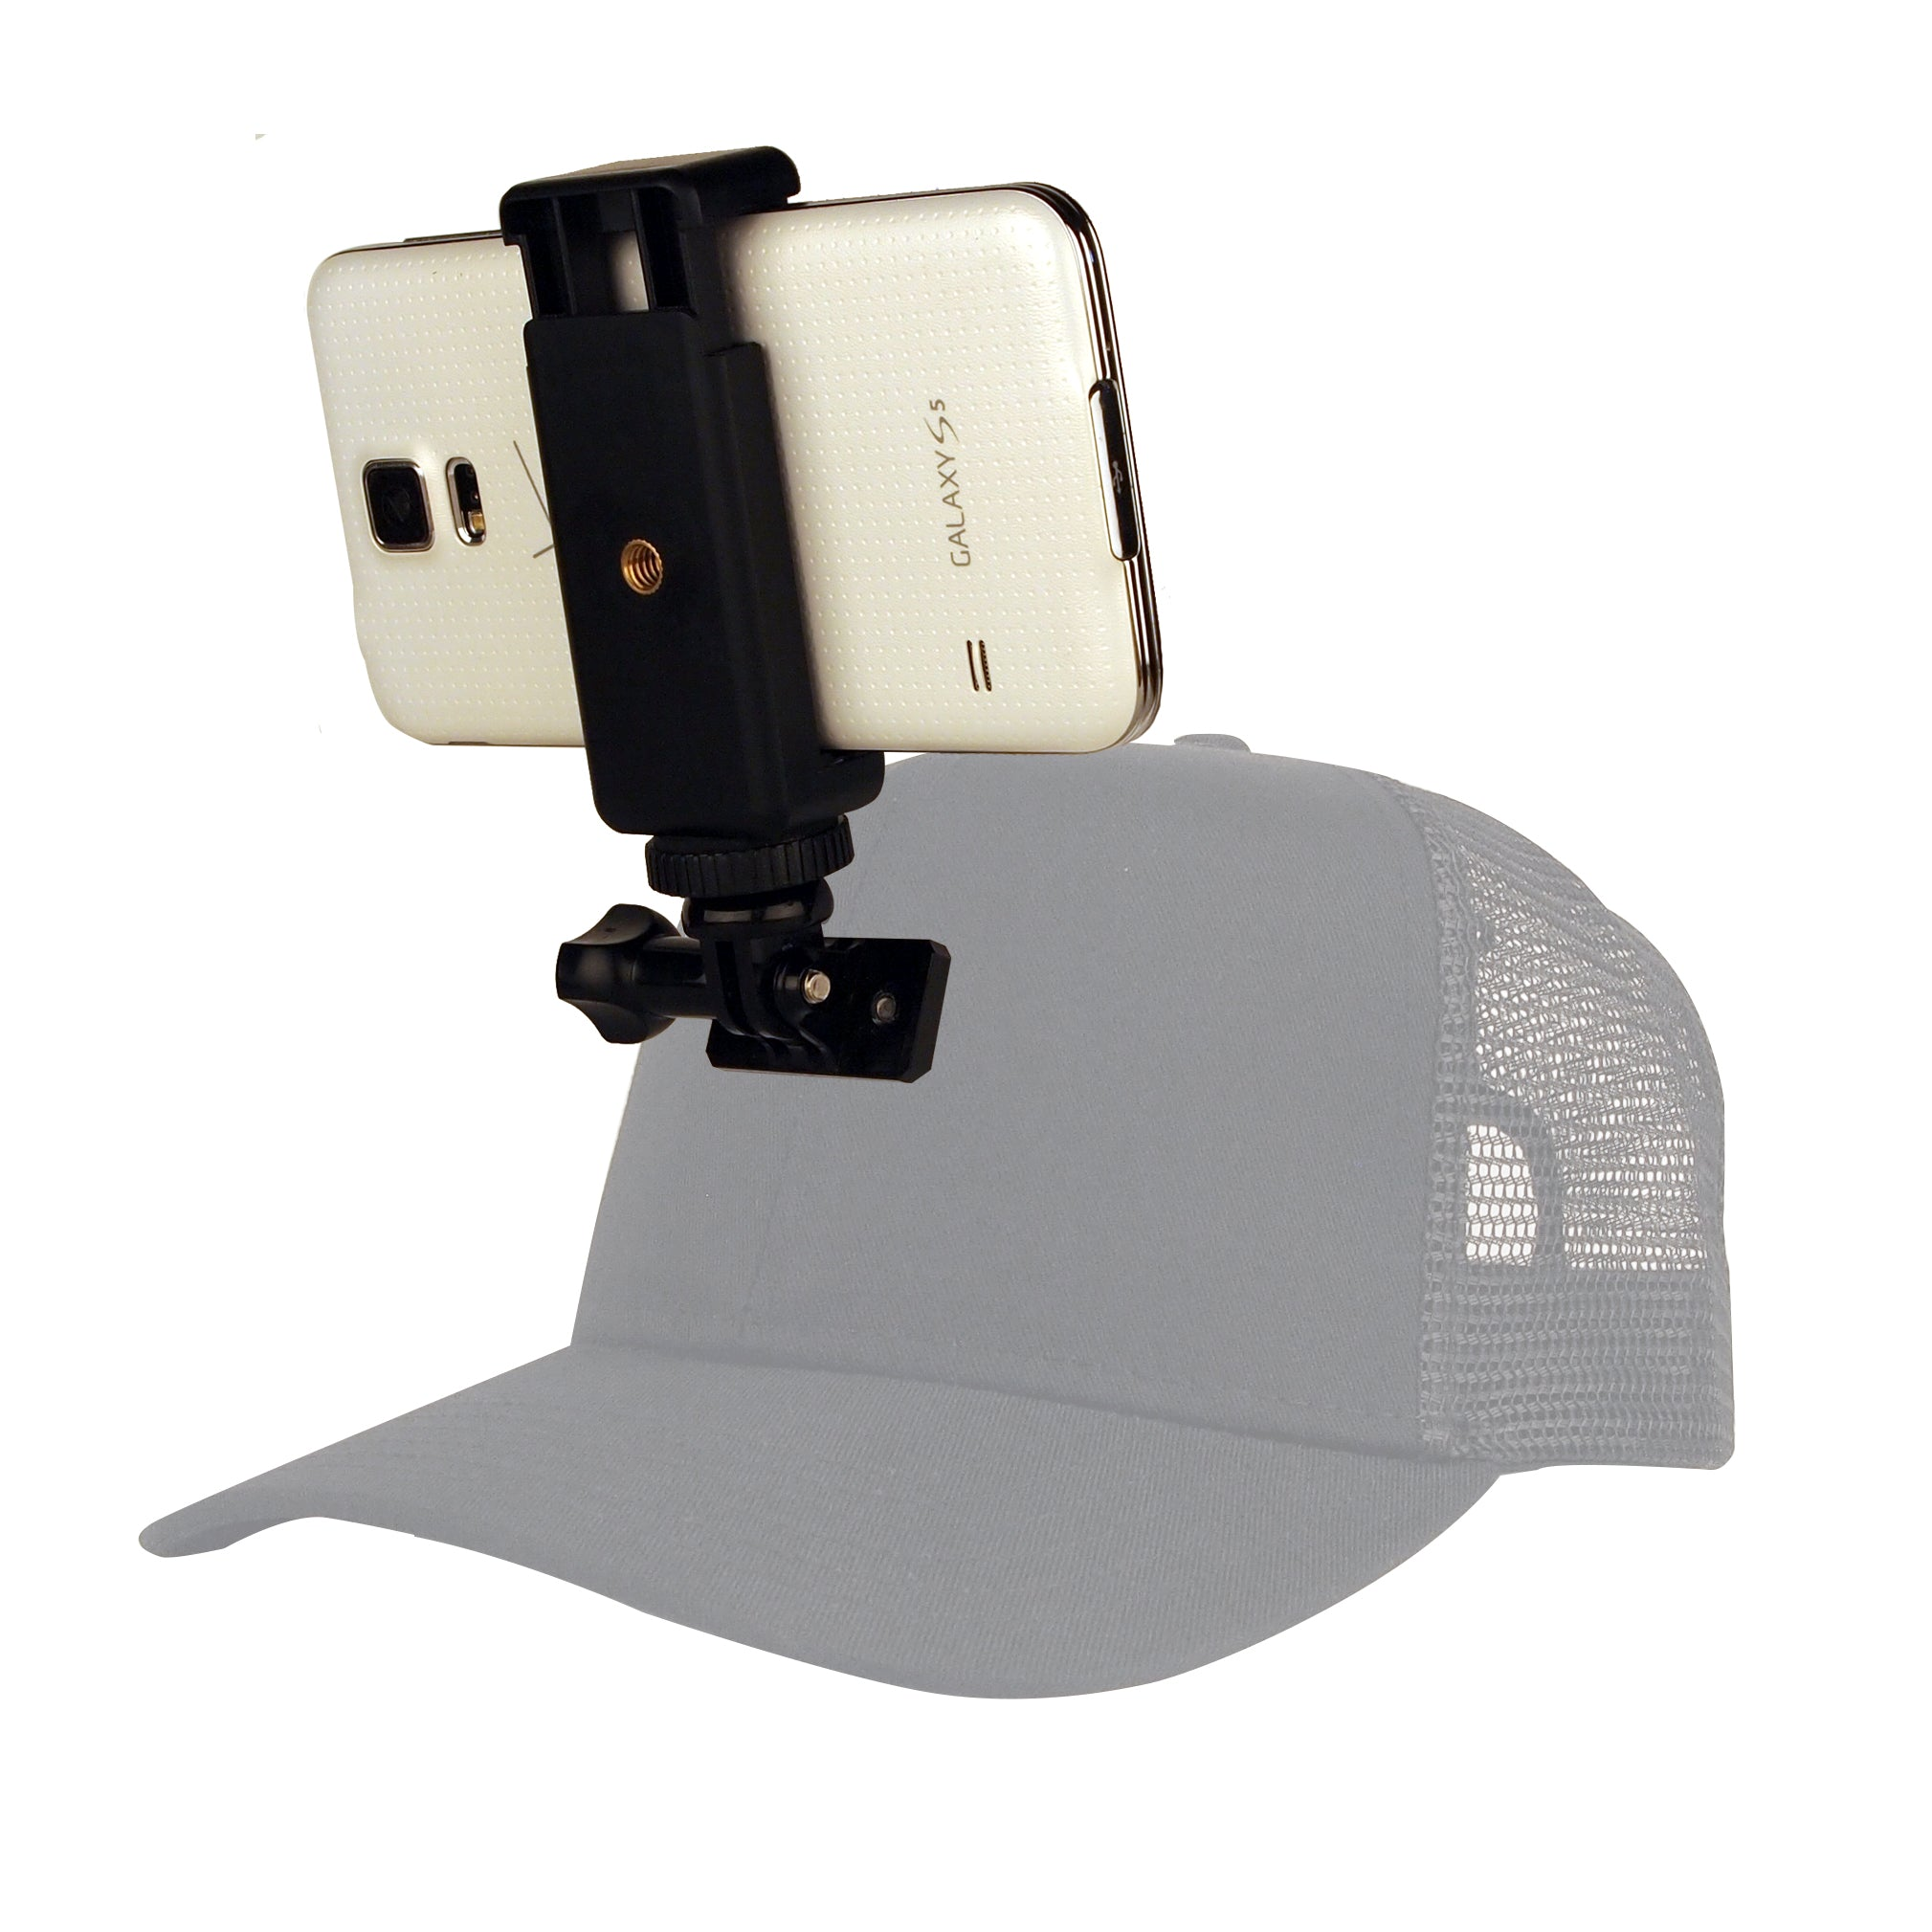 Smartphone Mounting Kit - Hat Mount for GoPro